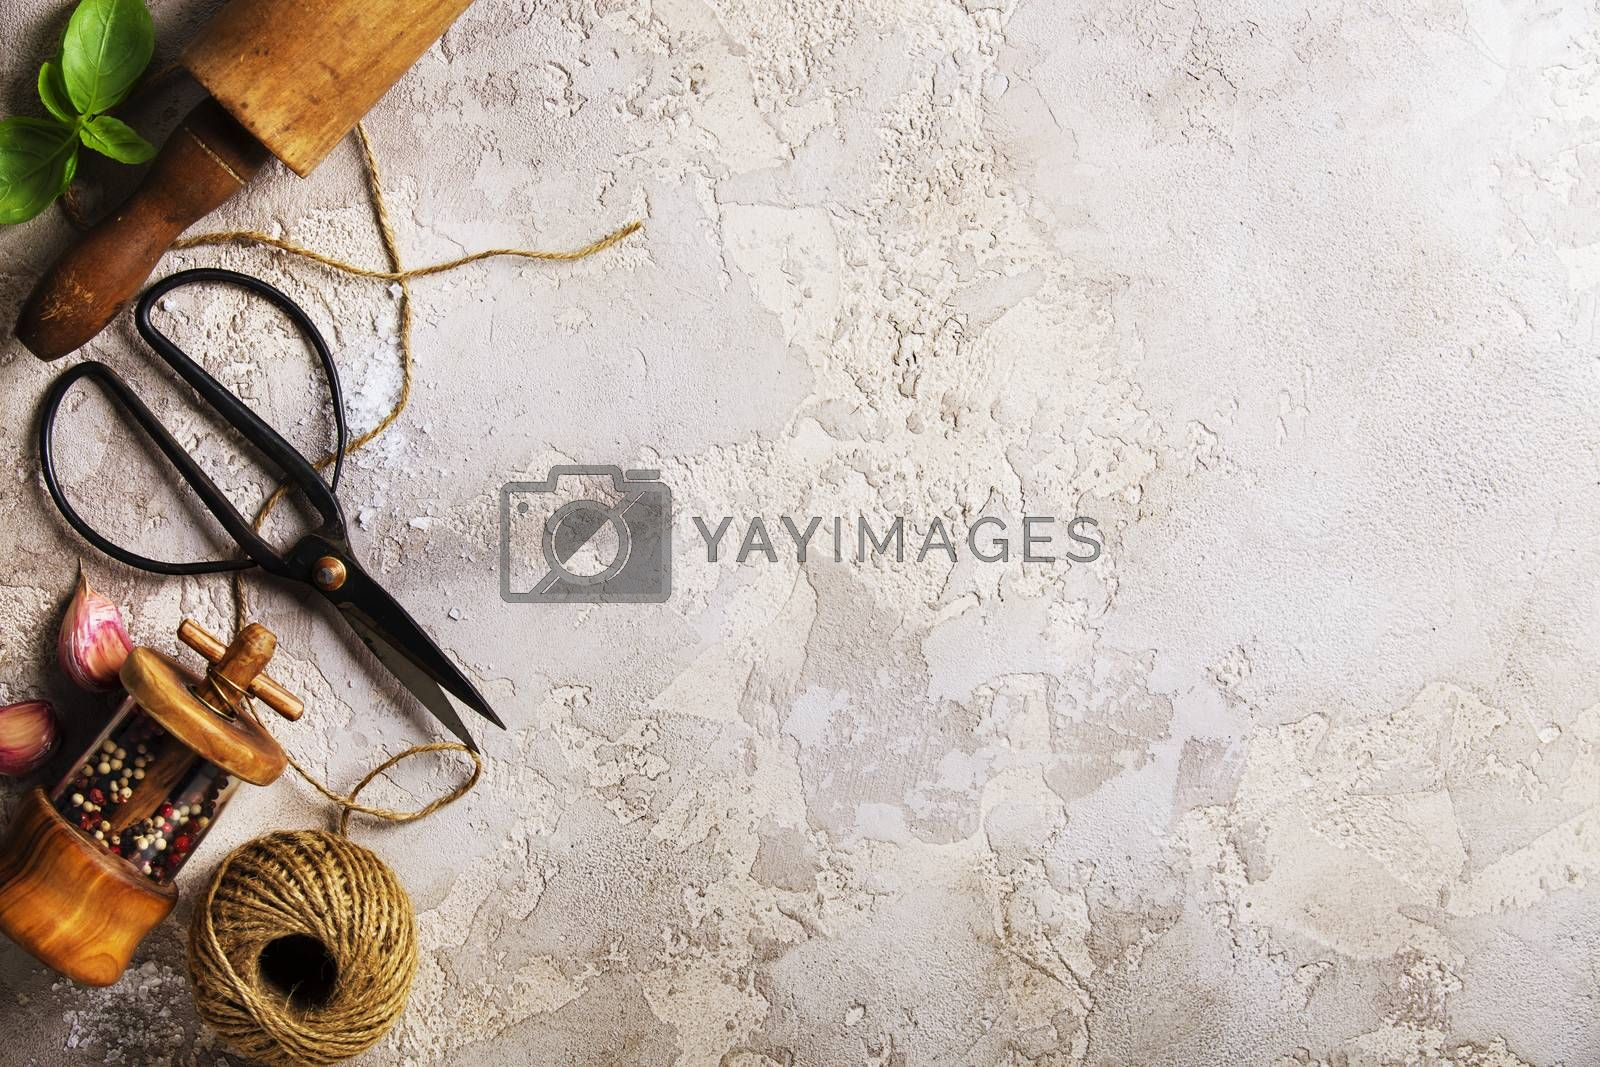 Cooking background: rolling pin, scissors, pepper, garlic and basil leaves. Cooking, healthy or traditional food concept. Home cooking utensils. Top view, copy space